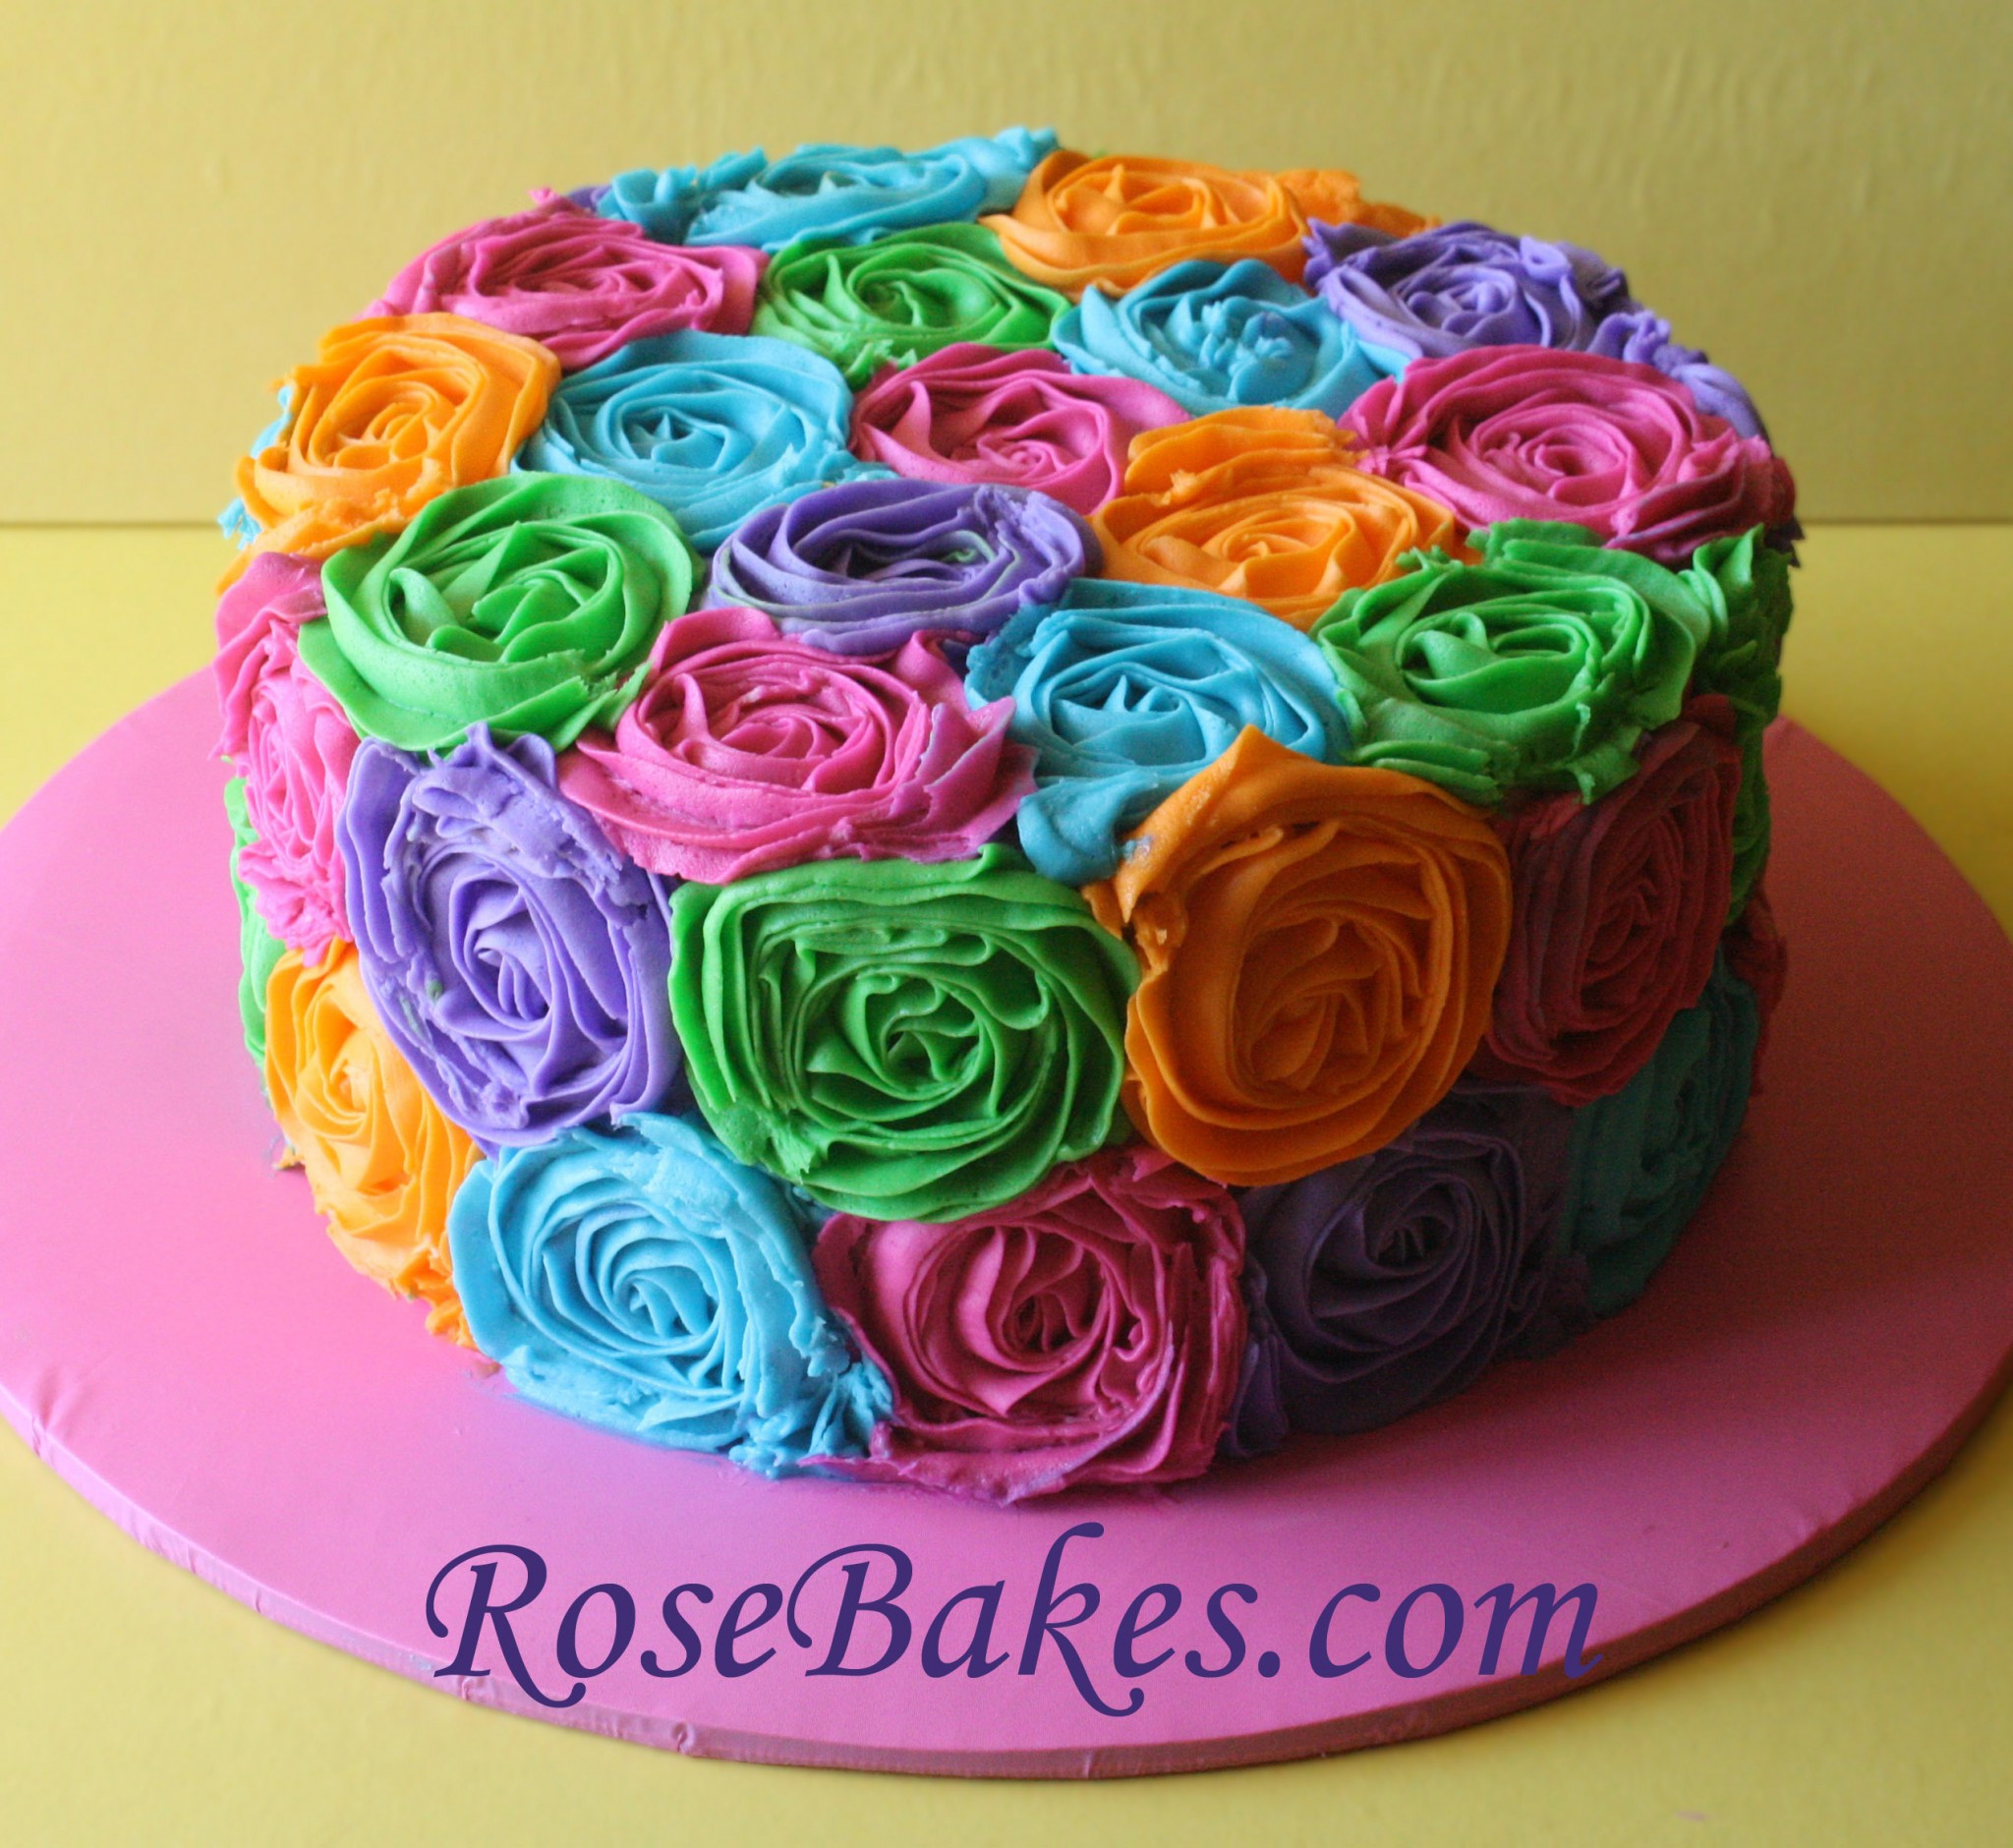 Best ideas about Roses Birthday Cake . Save or Pin Bright Buttercream Roses Birthday Cake Now.